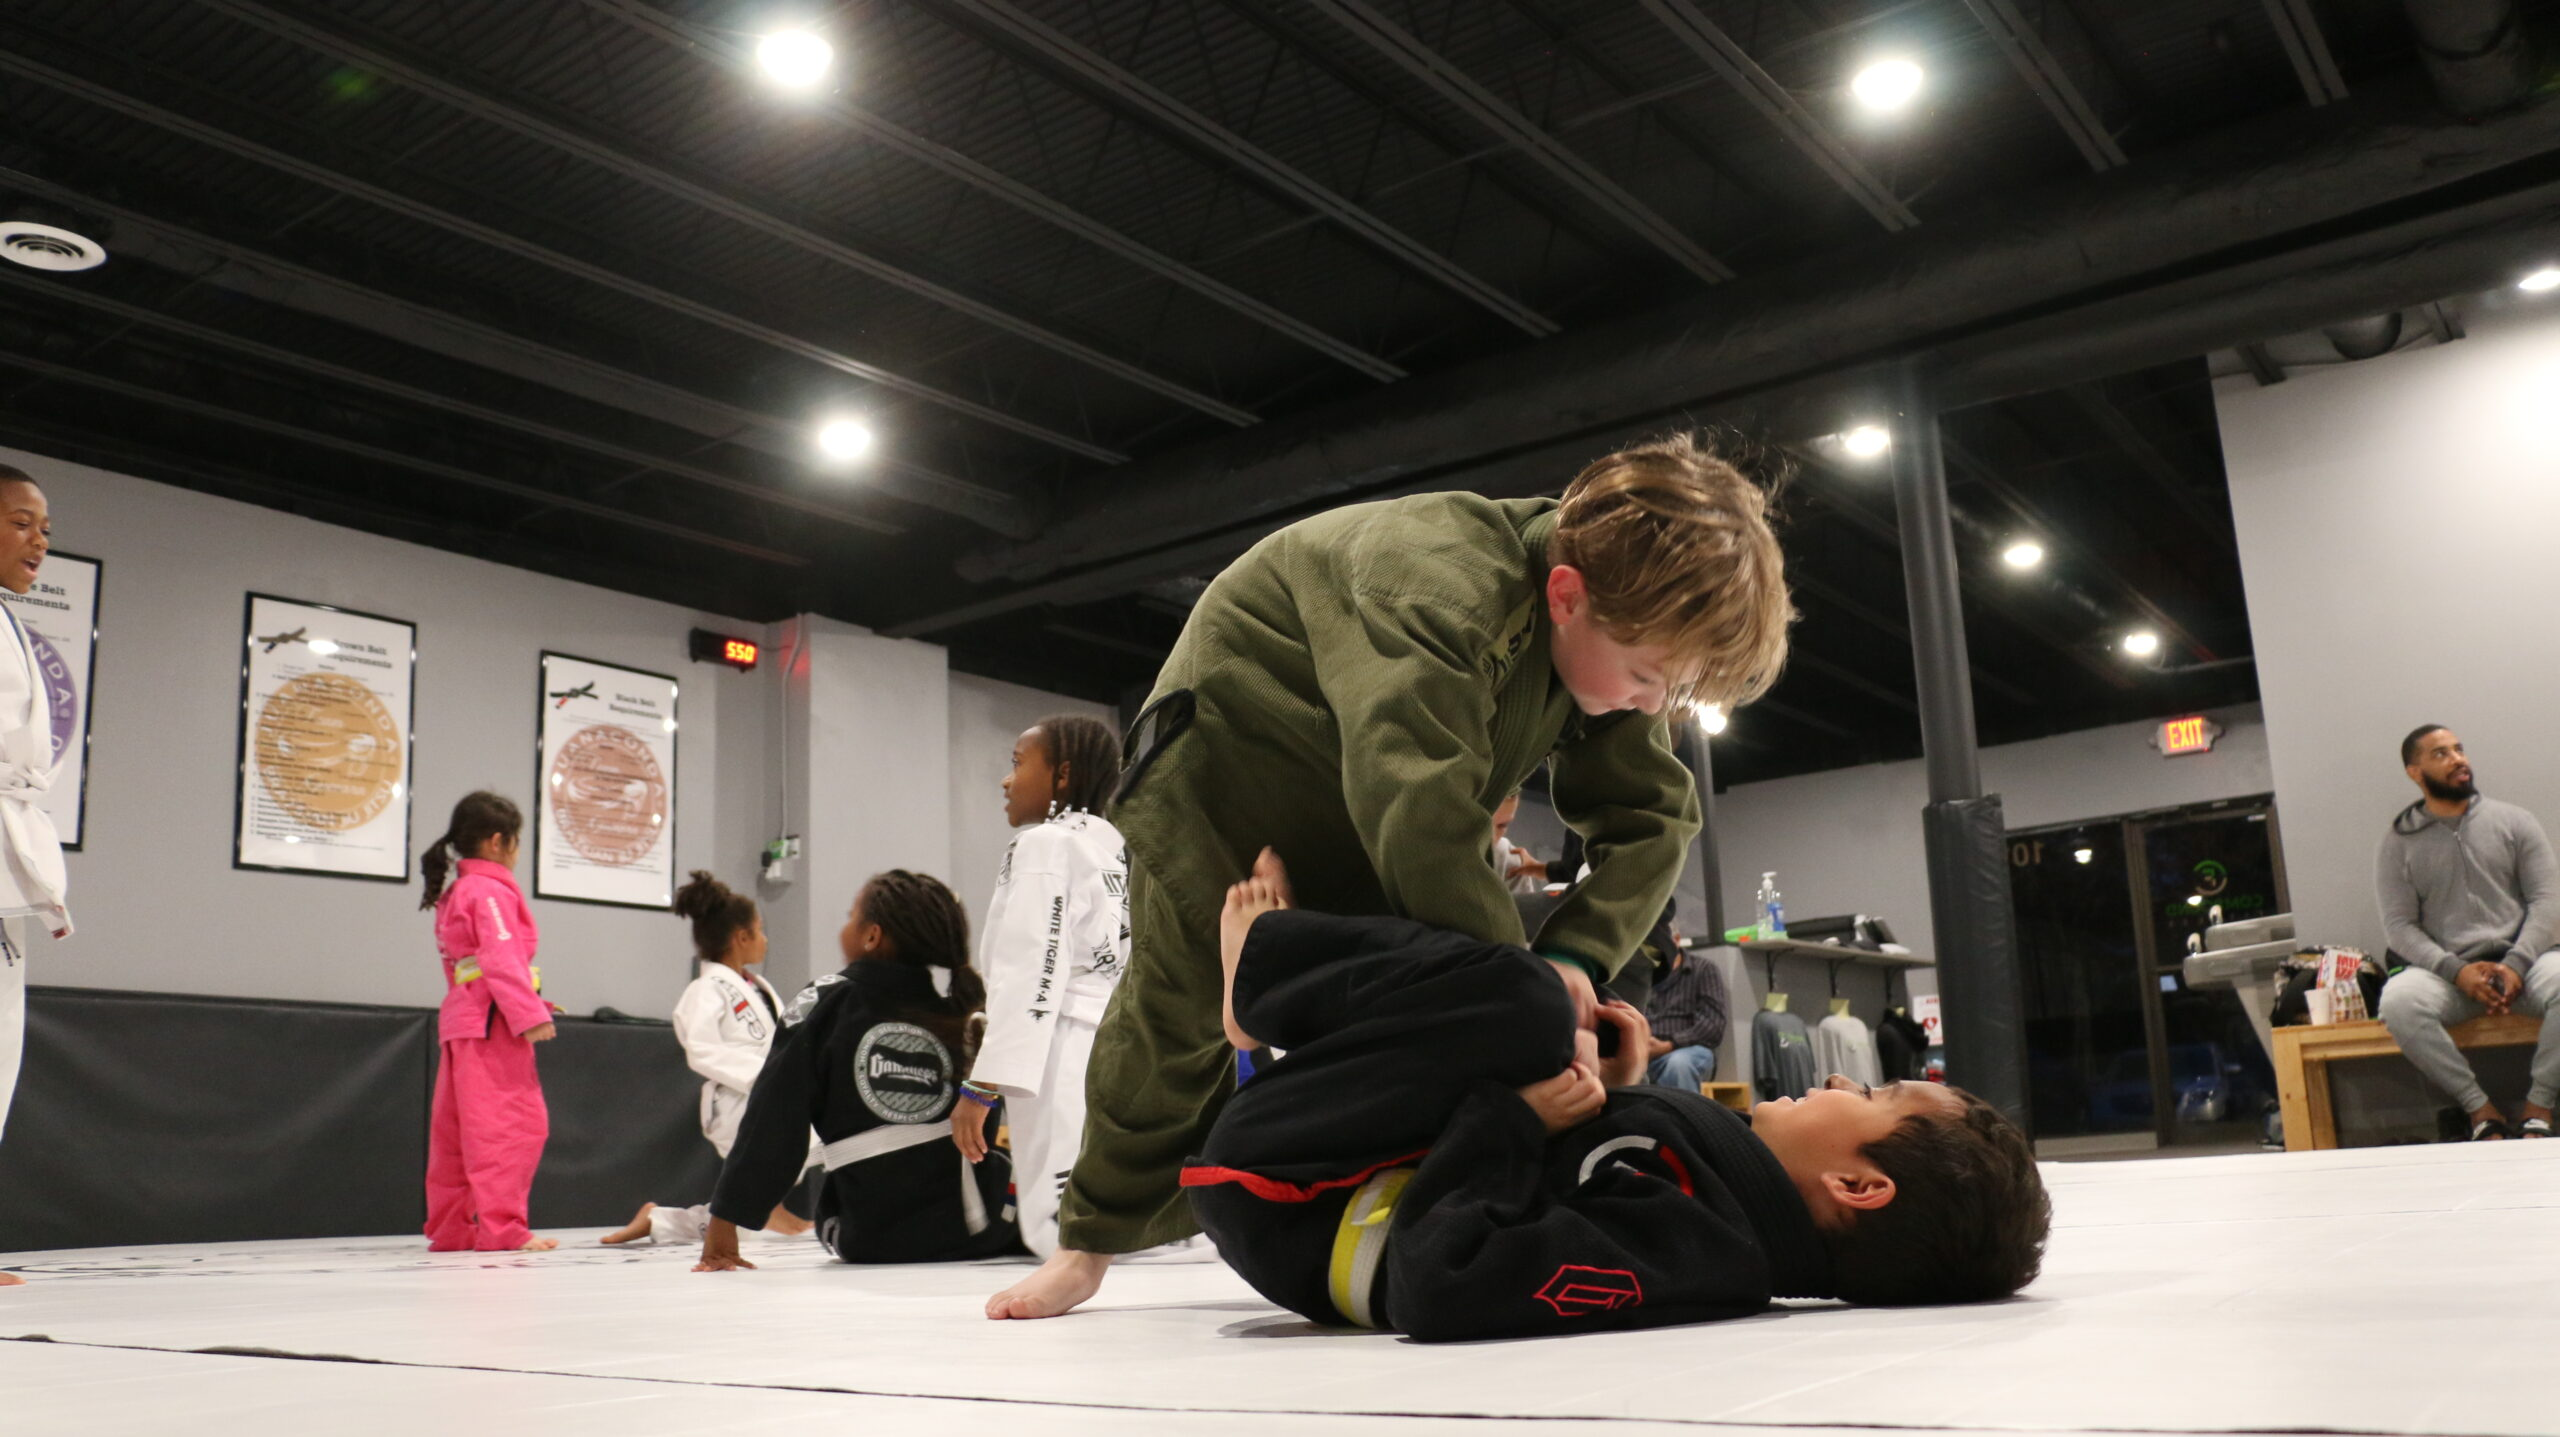 Physical training programs for kids, too.